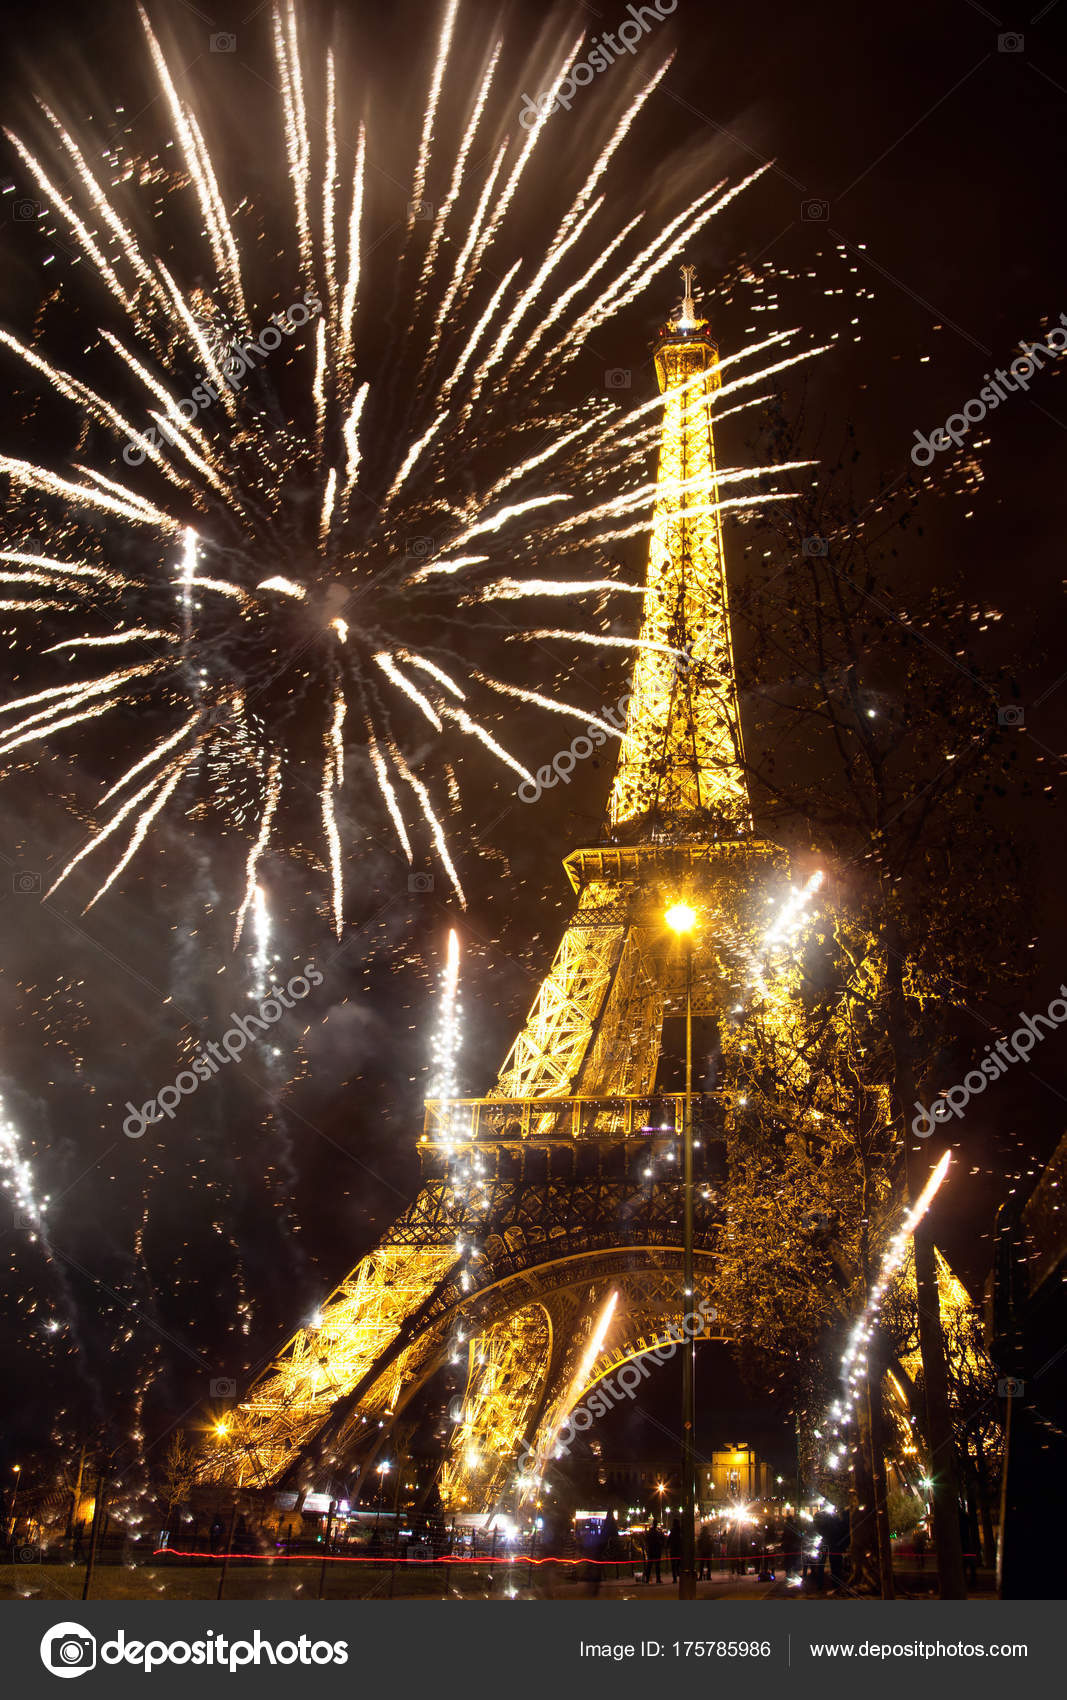 celebrating New Year in the city   Eiffel tower  Paris  France     Celebrating New Year in the city   Eiffel tower  Paris  France  with  fireworks     Photo by melis82